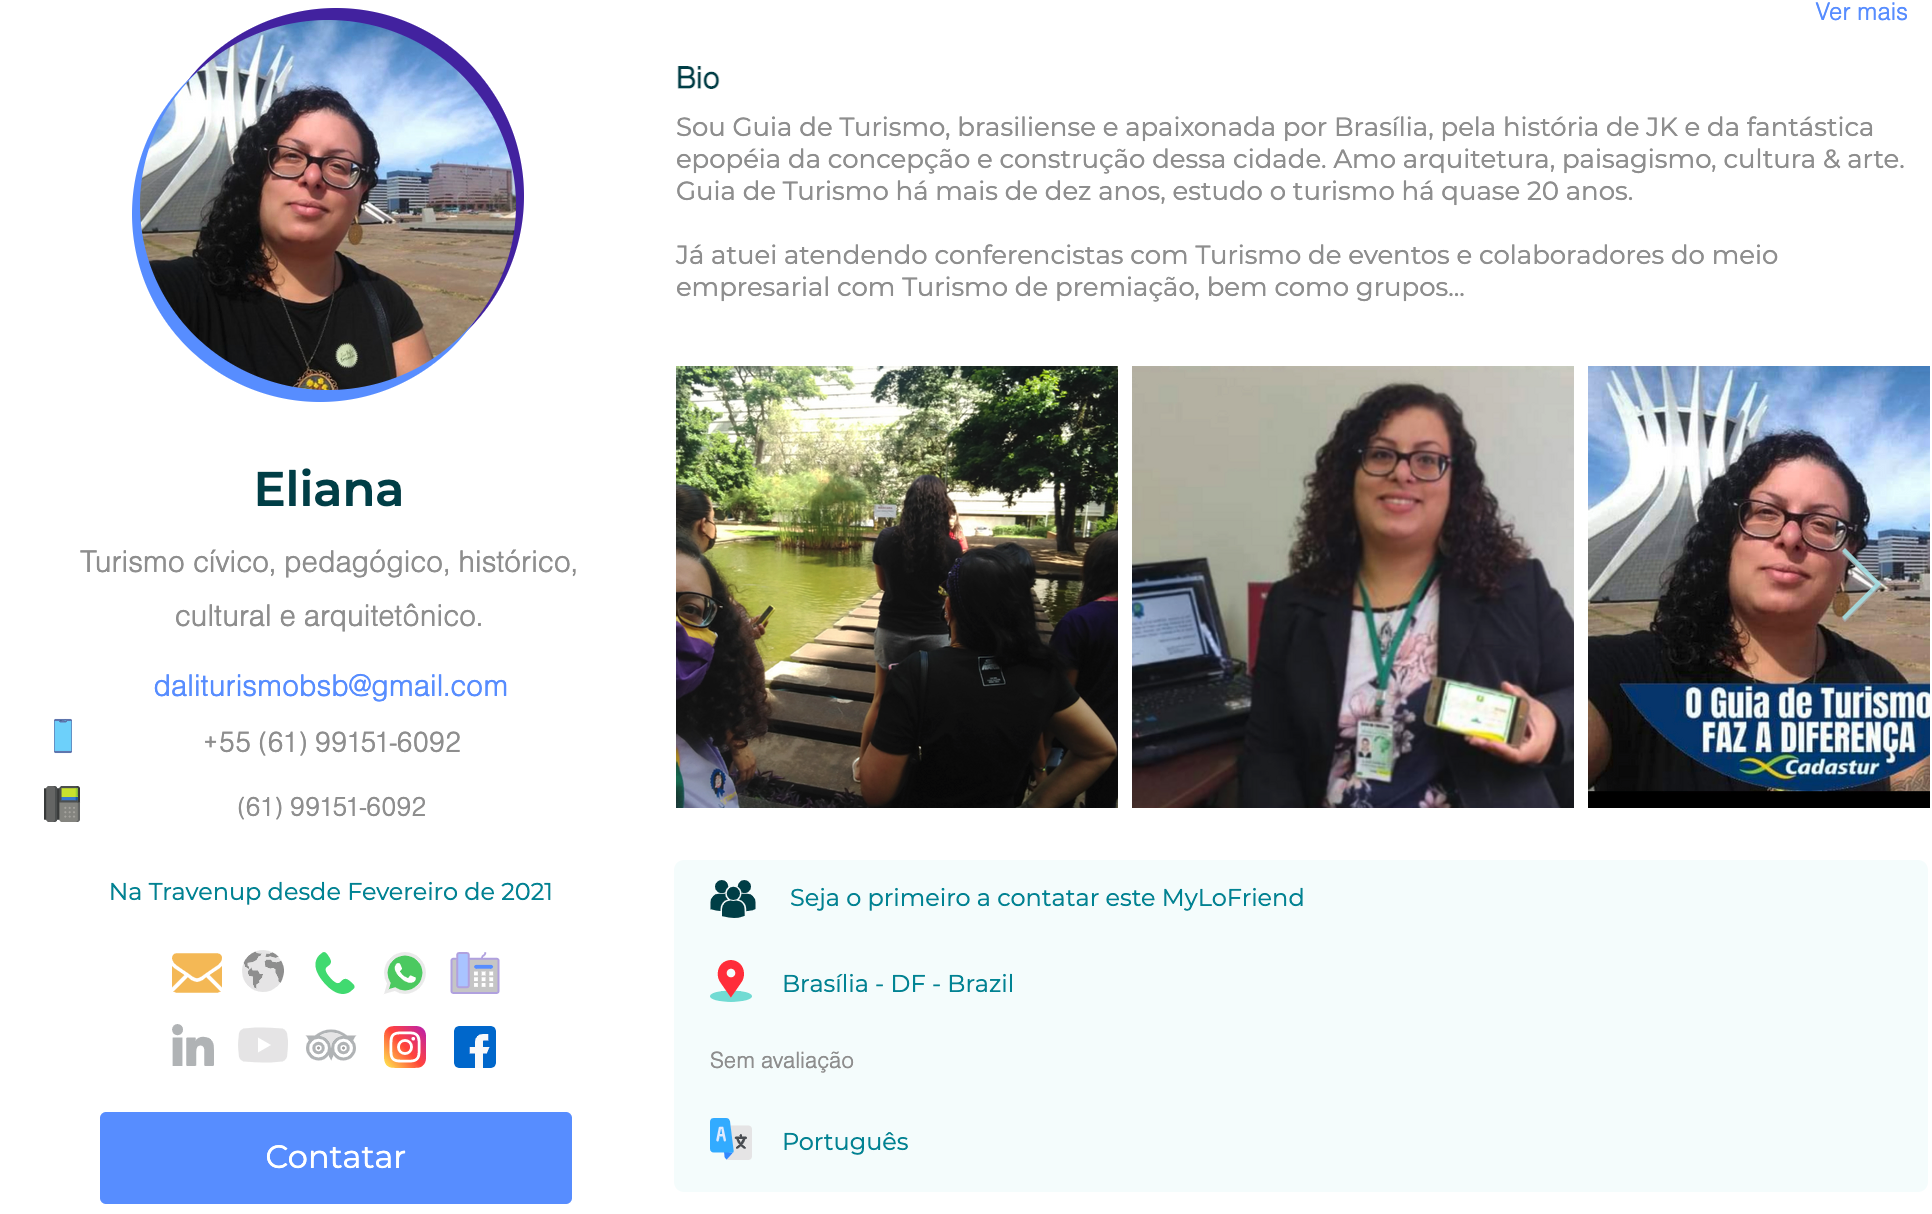 Eliana Contact Page in Brasilia DF at TravenUp